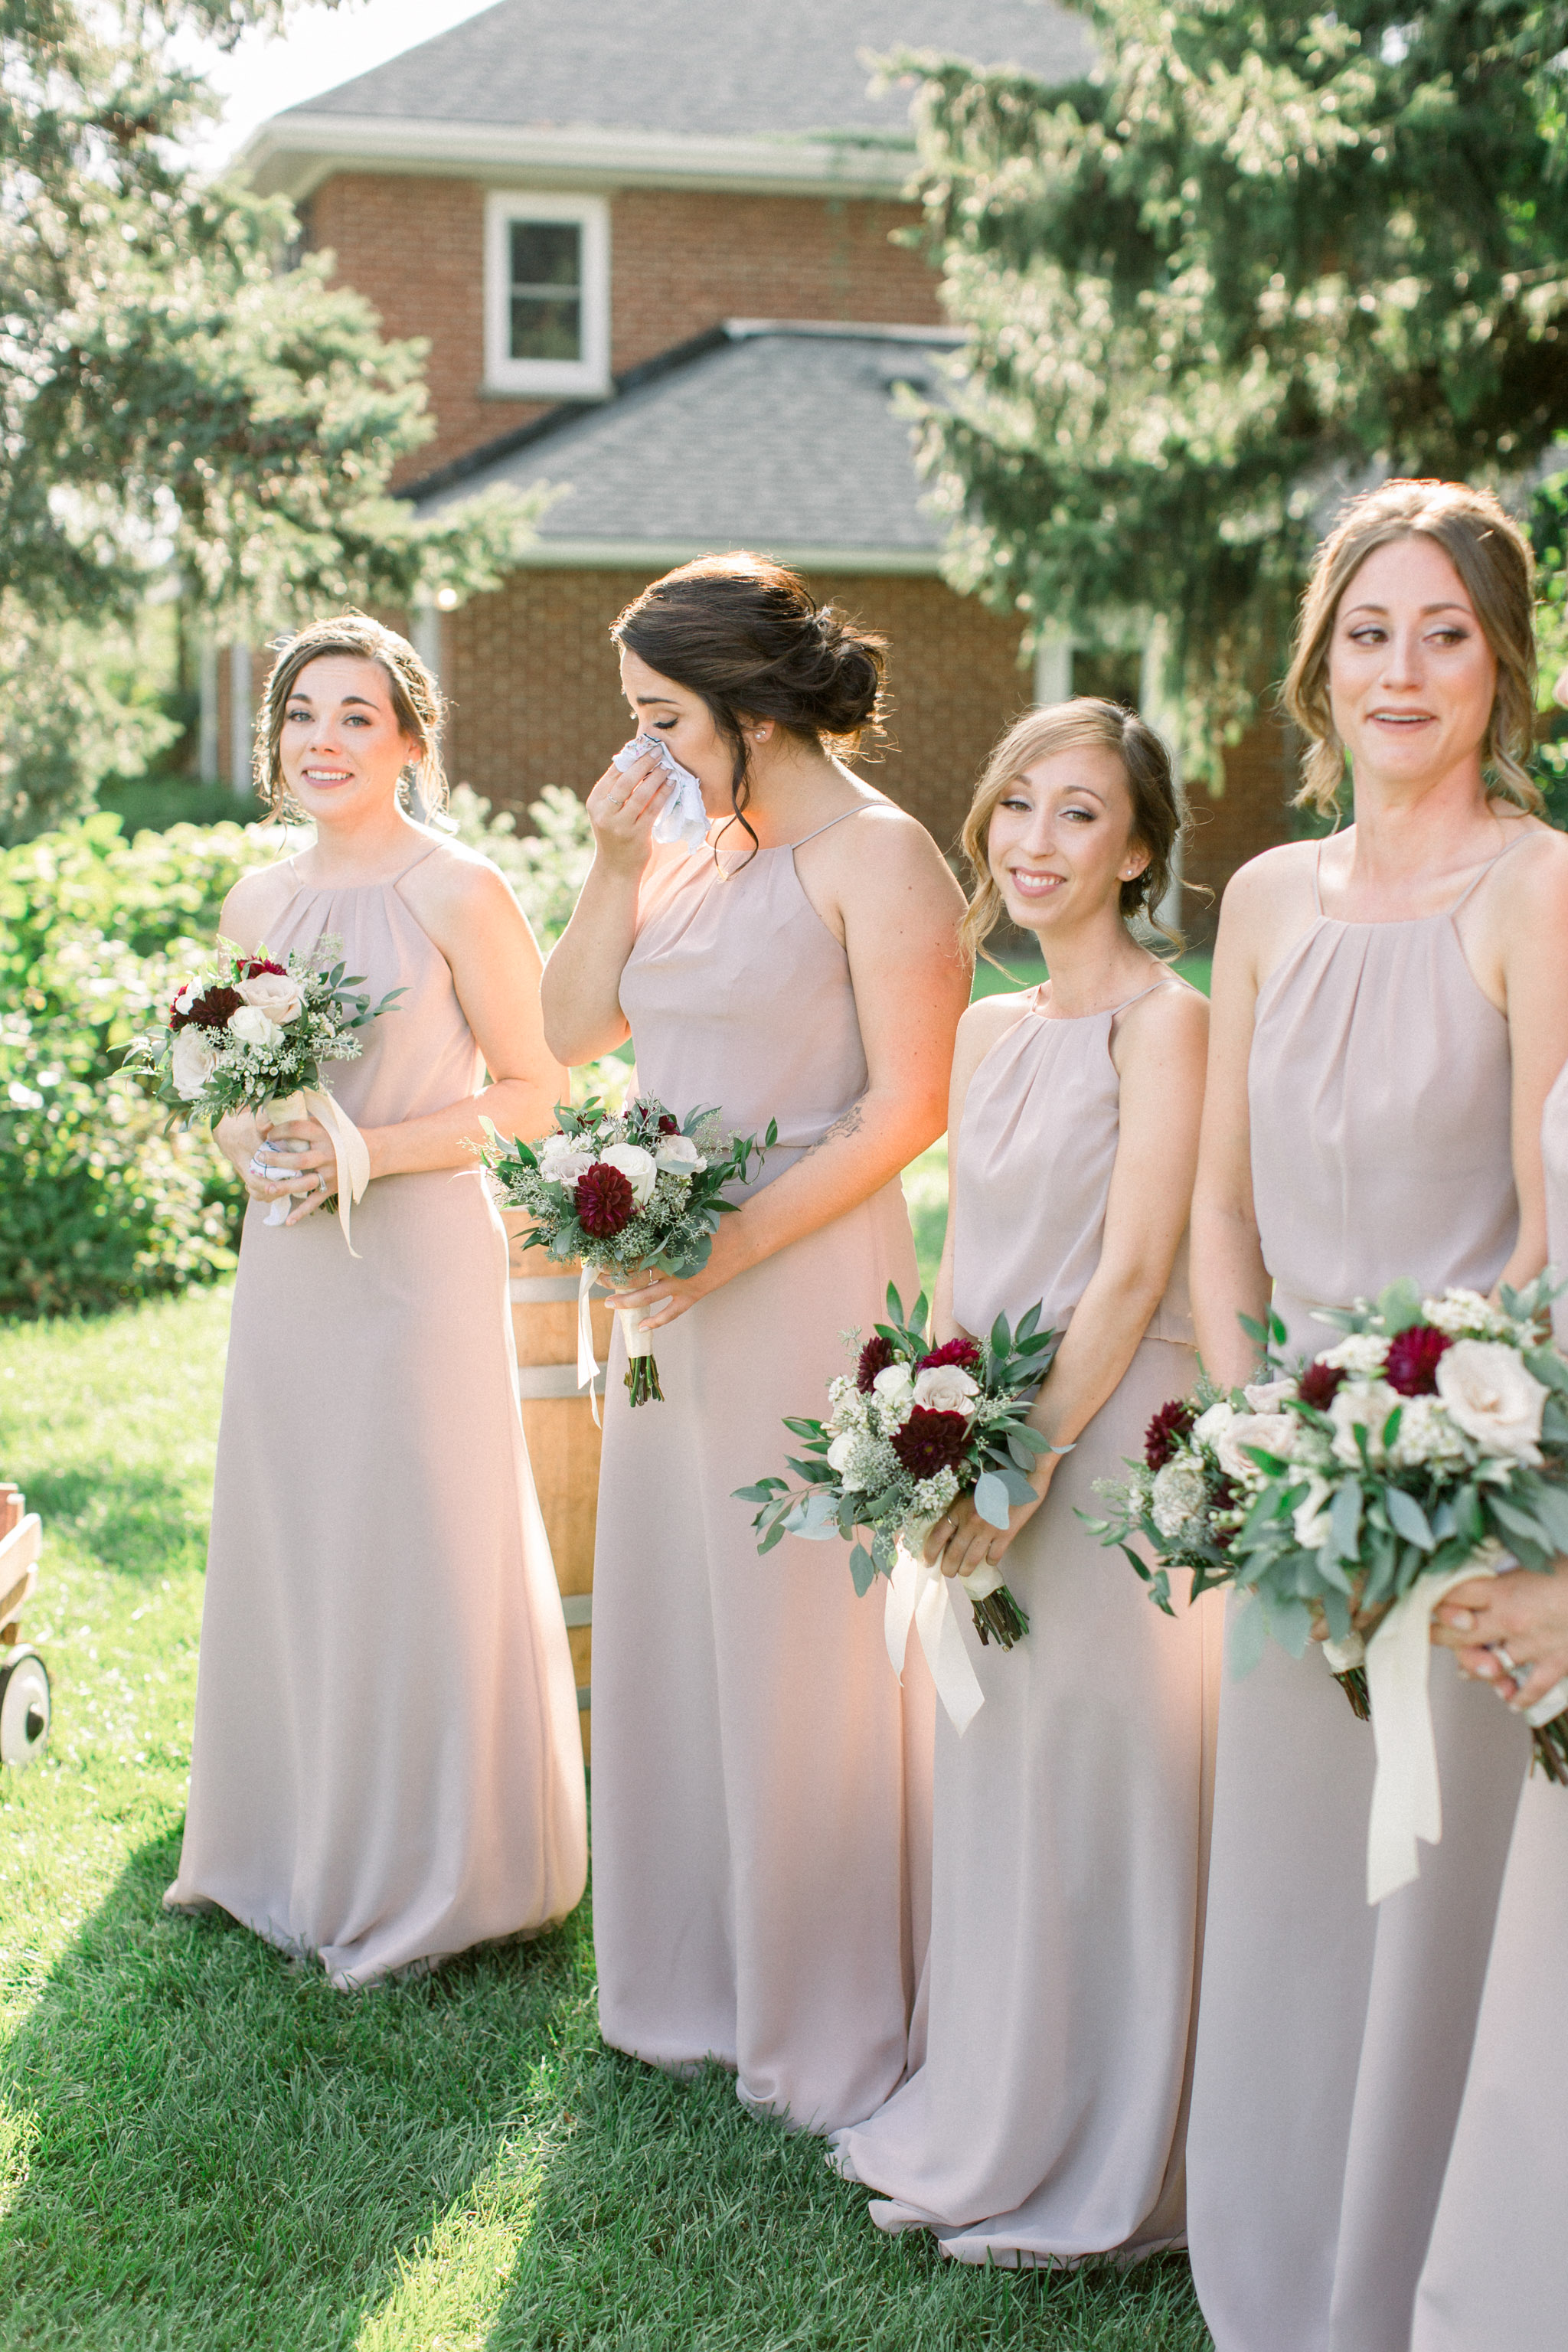 Bridesmaids crying during ceremony.